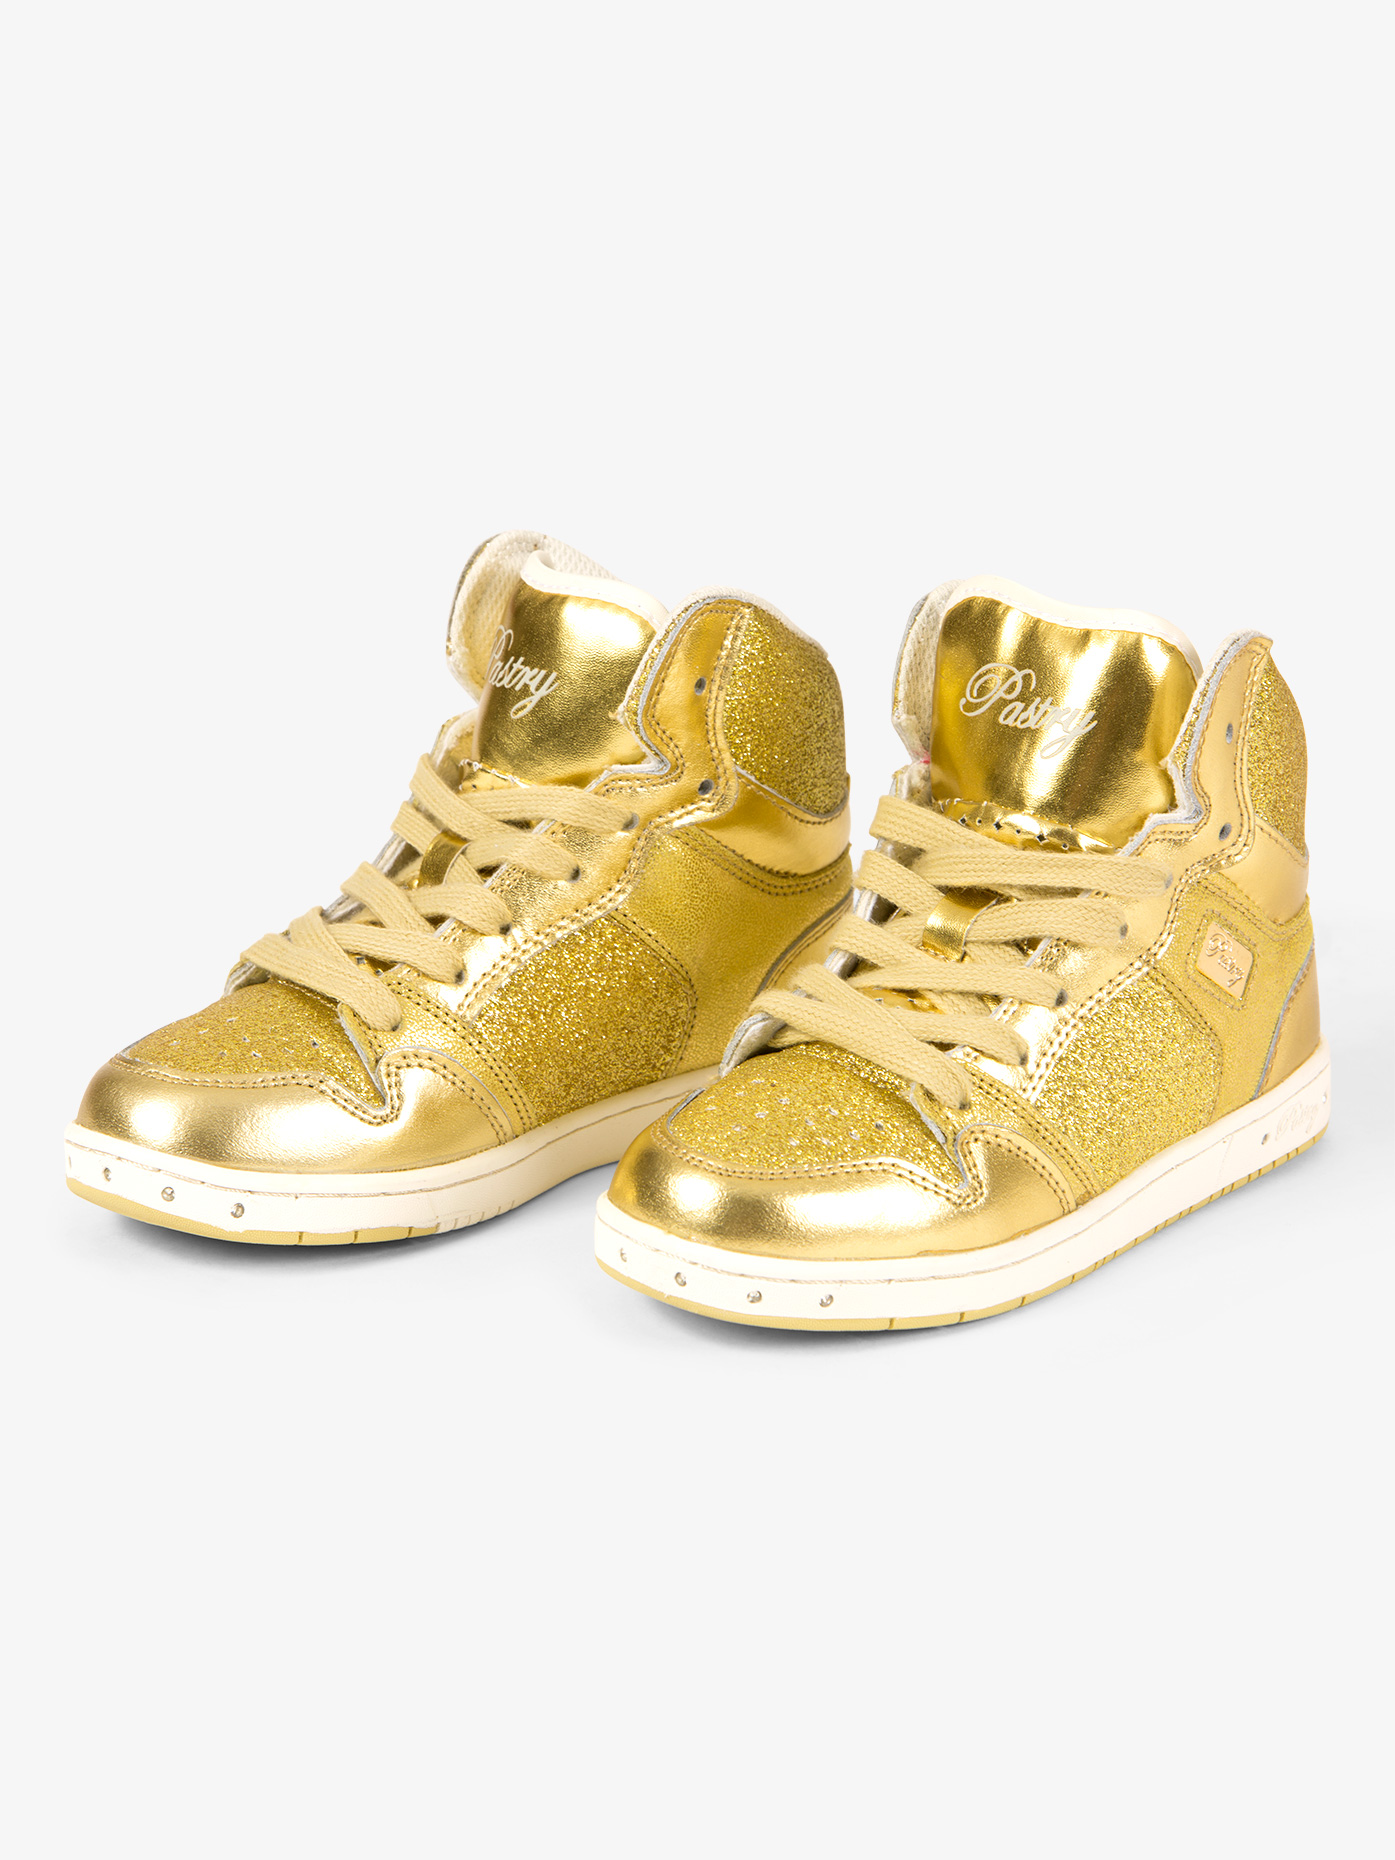 Pastry Adult Glam Pie Glitter Gold Sneakers PA133021